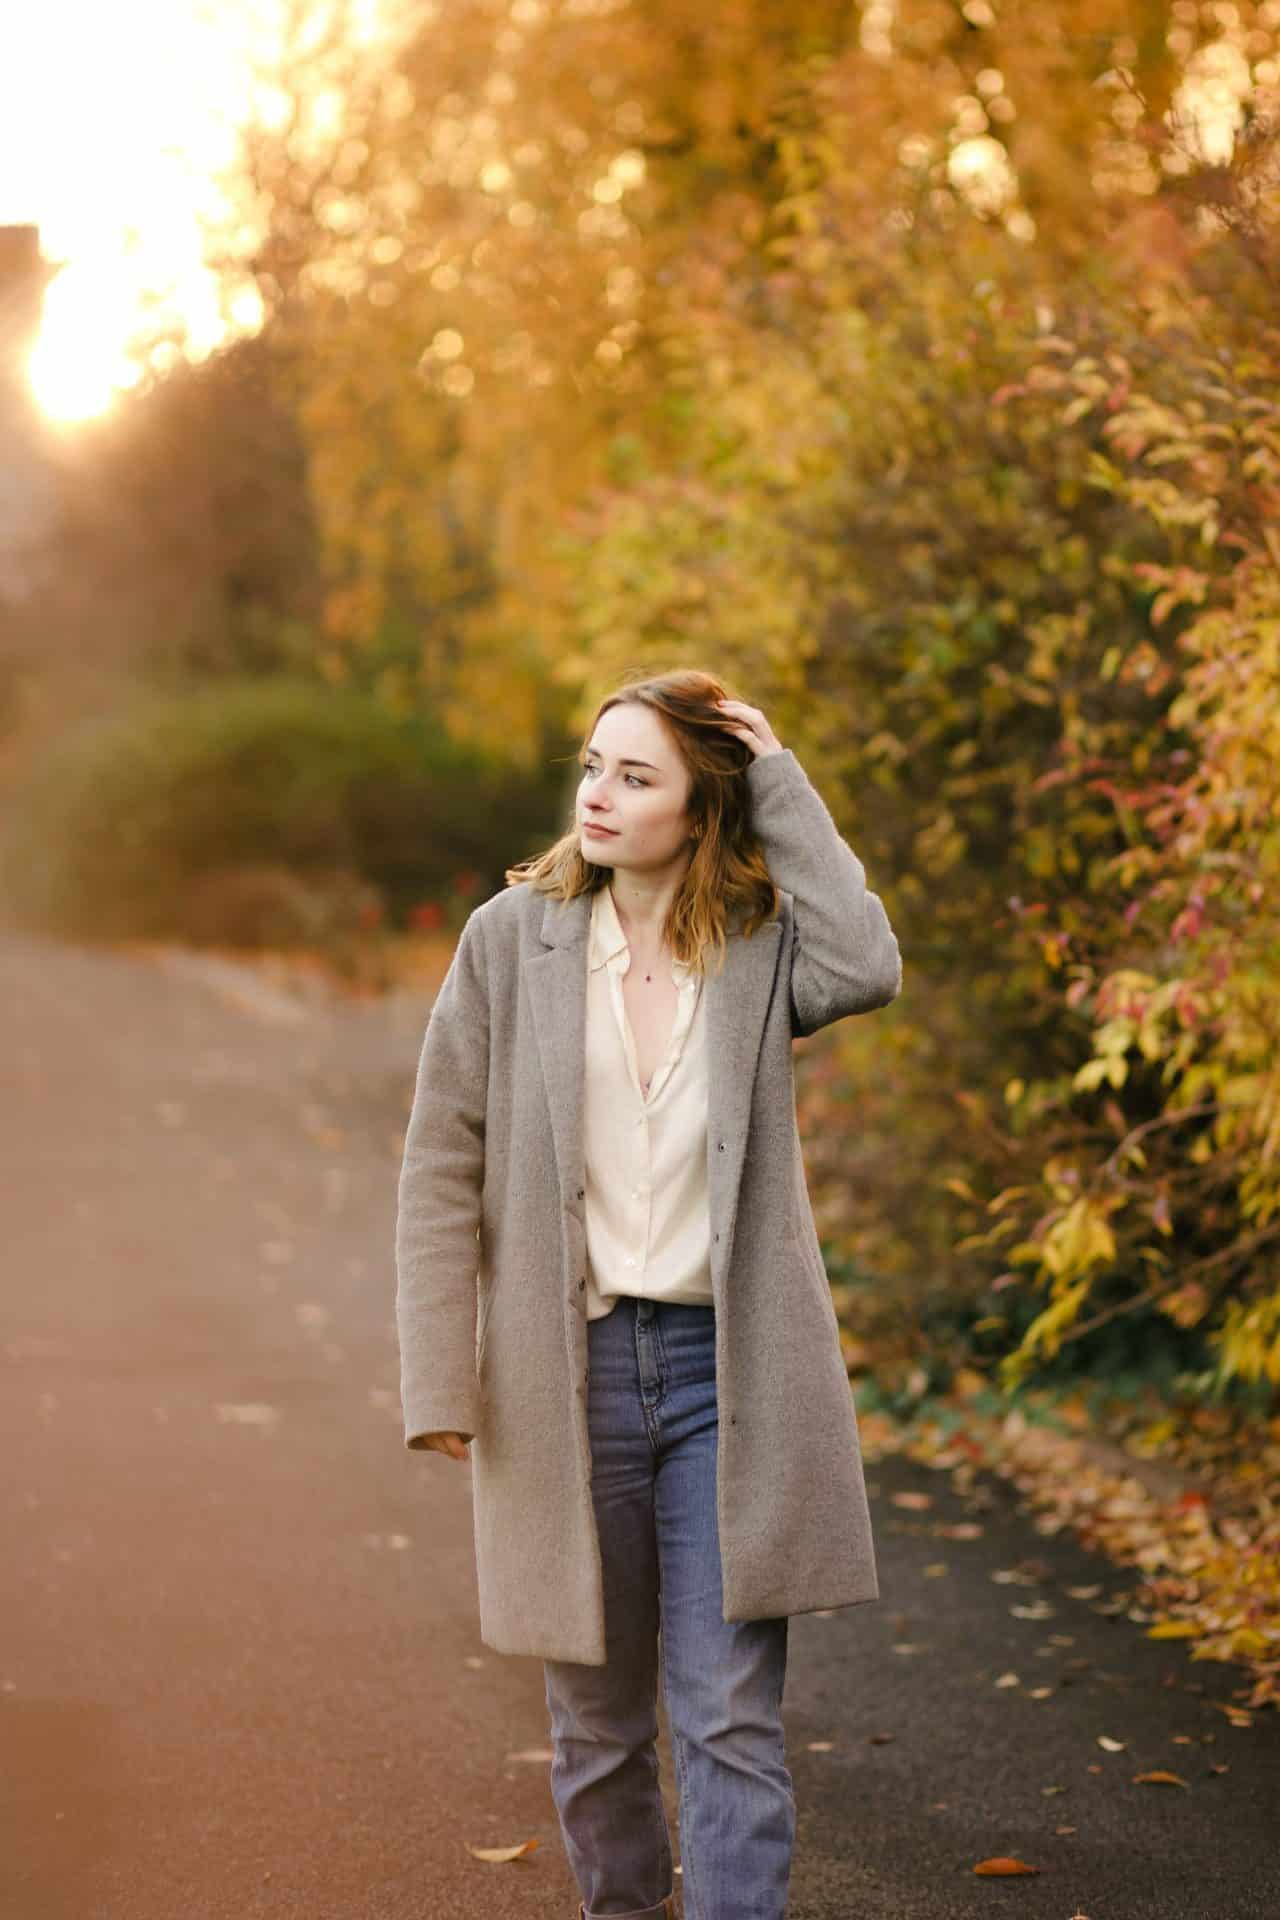 full length outfit photo of a girl wearing a silk shirt, jeans and coat standing amongst autumn leaves. how to pose for photos